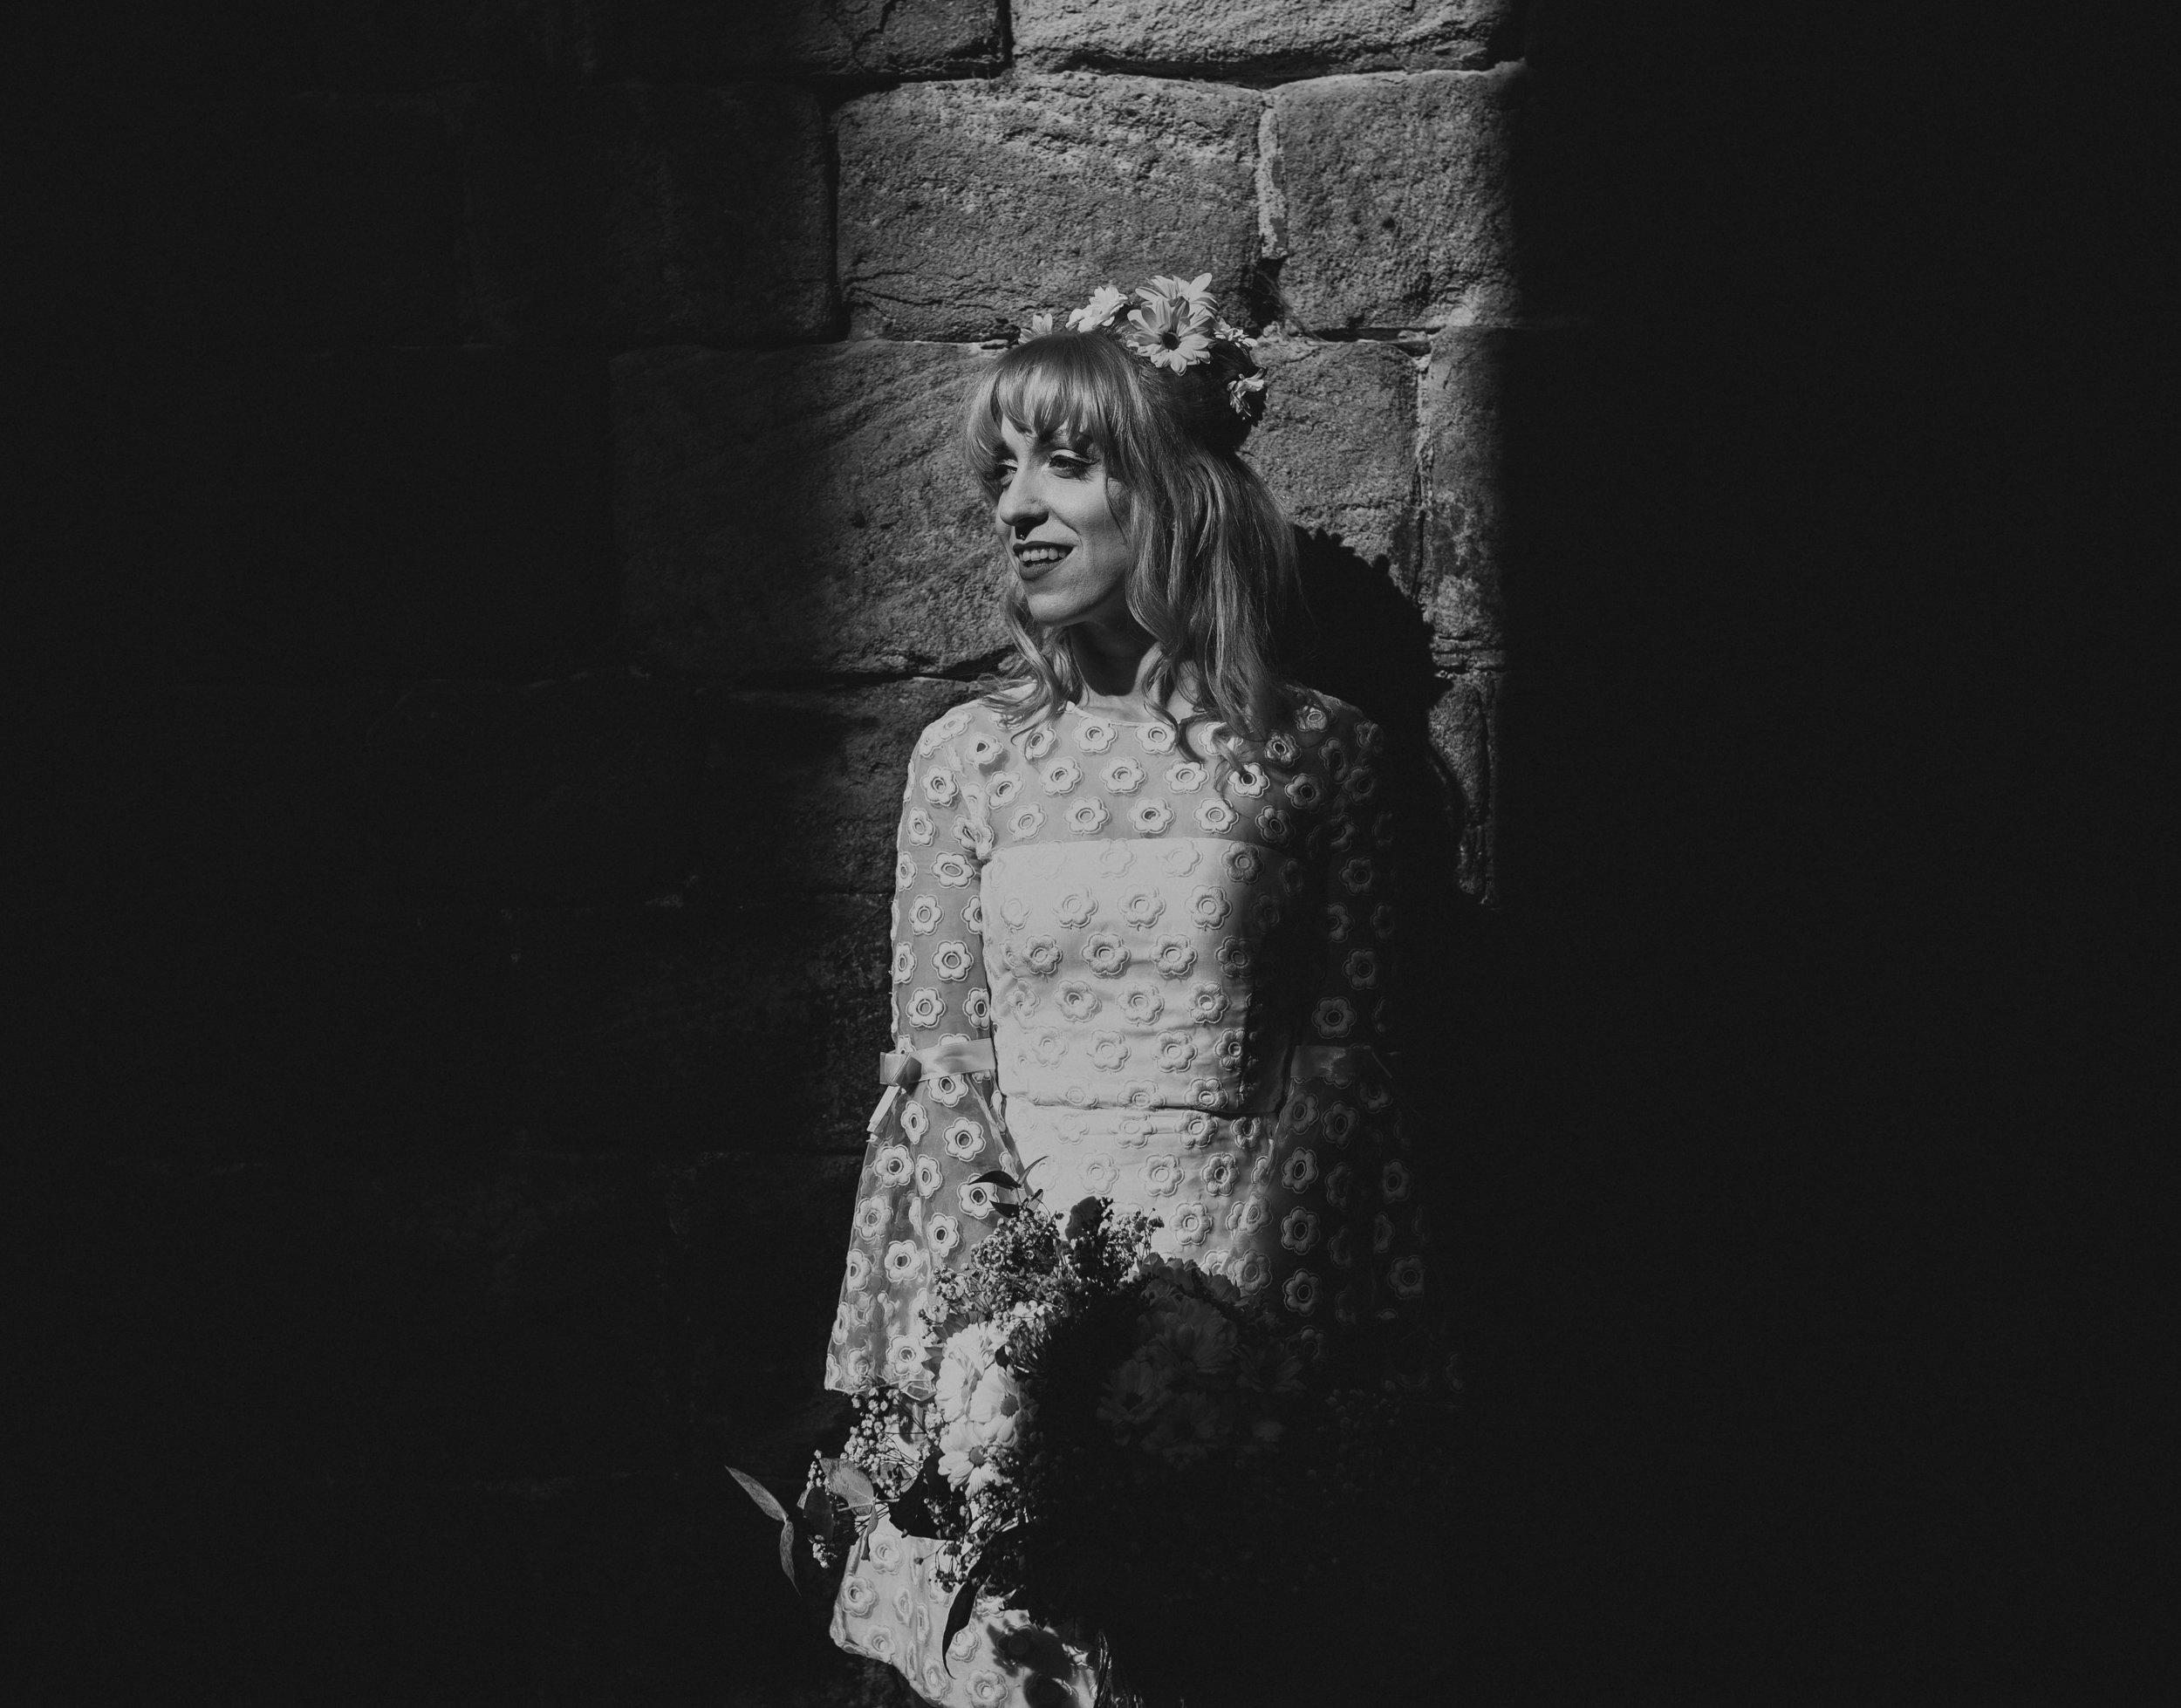 ALTERNATIVE_WEDDING_PHOTOGRAPHY_LEEDS_UK_PJ_PHILLIPS_PHOTOGRAPHY_98.jpg